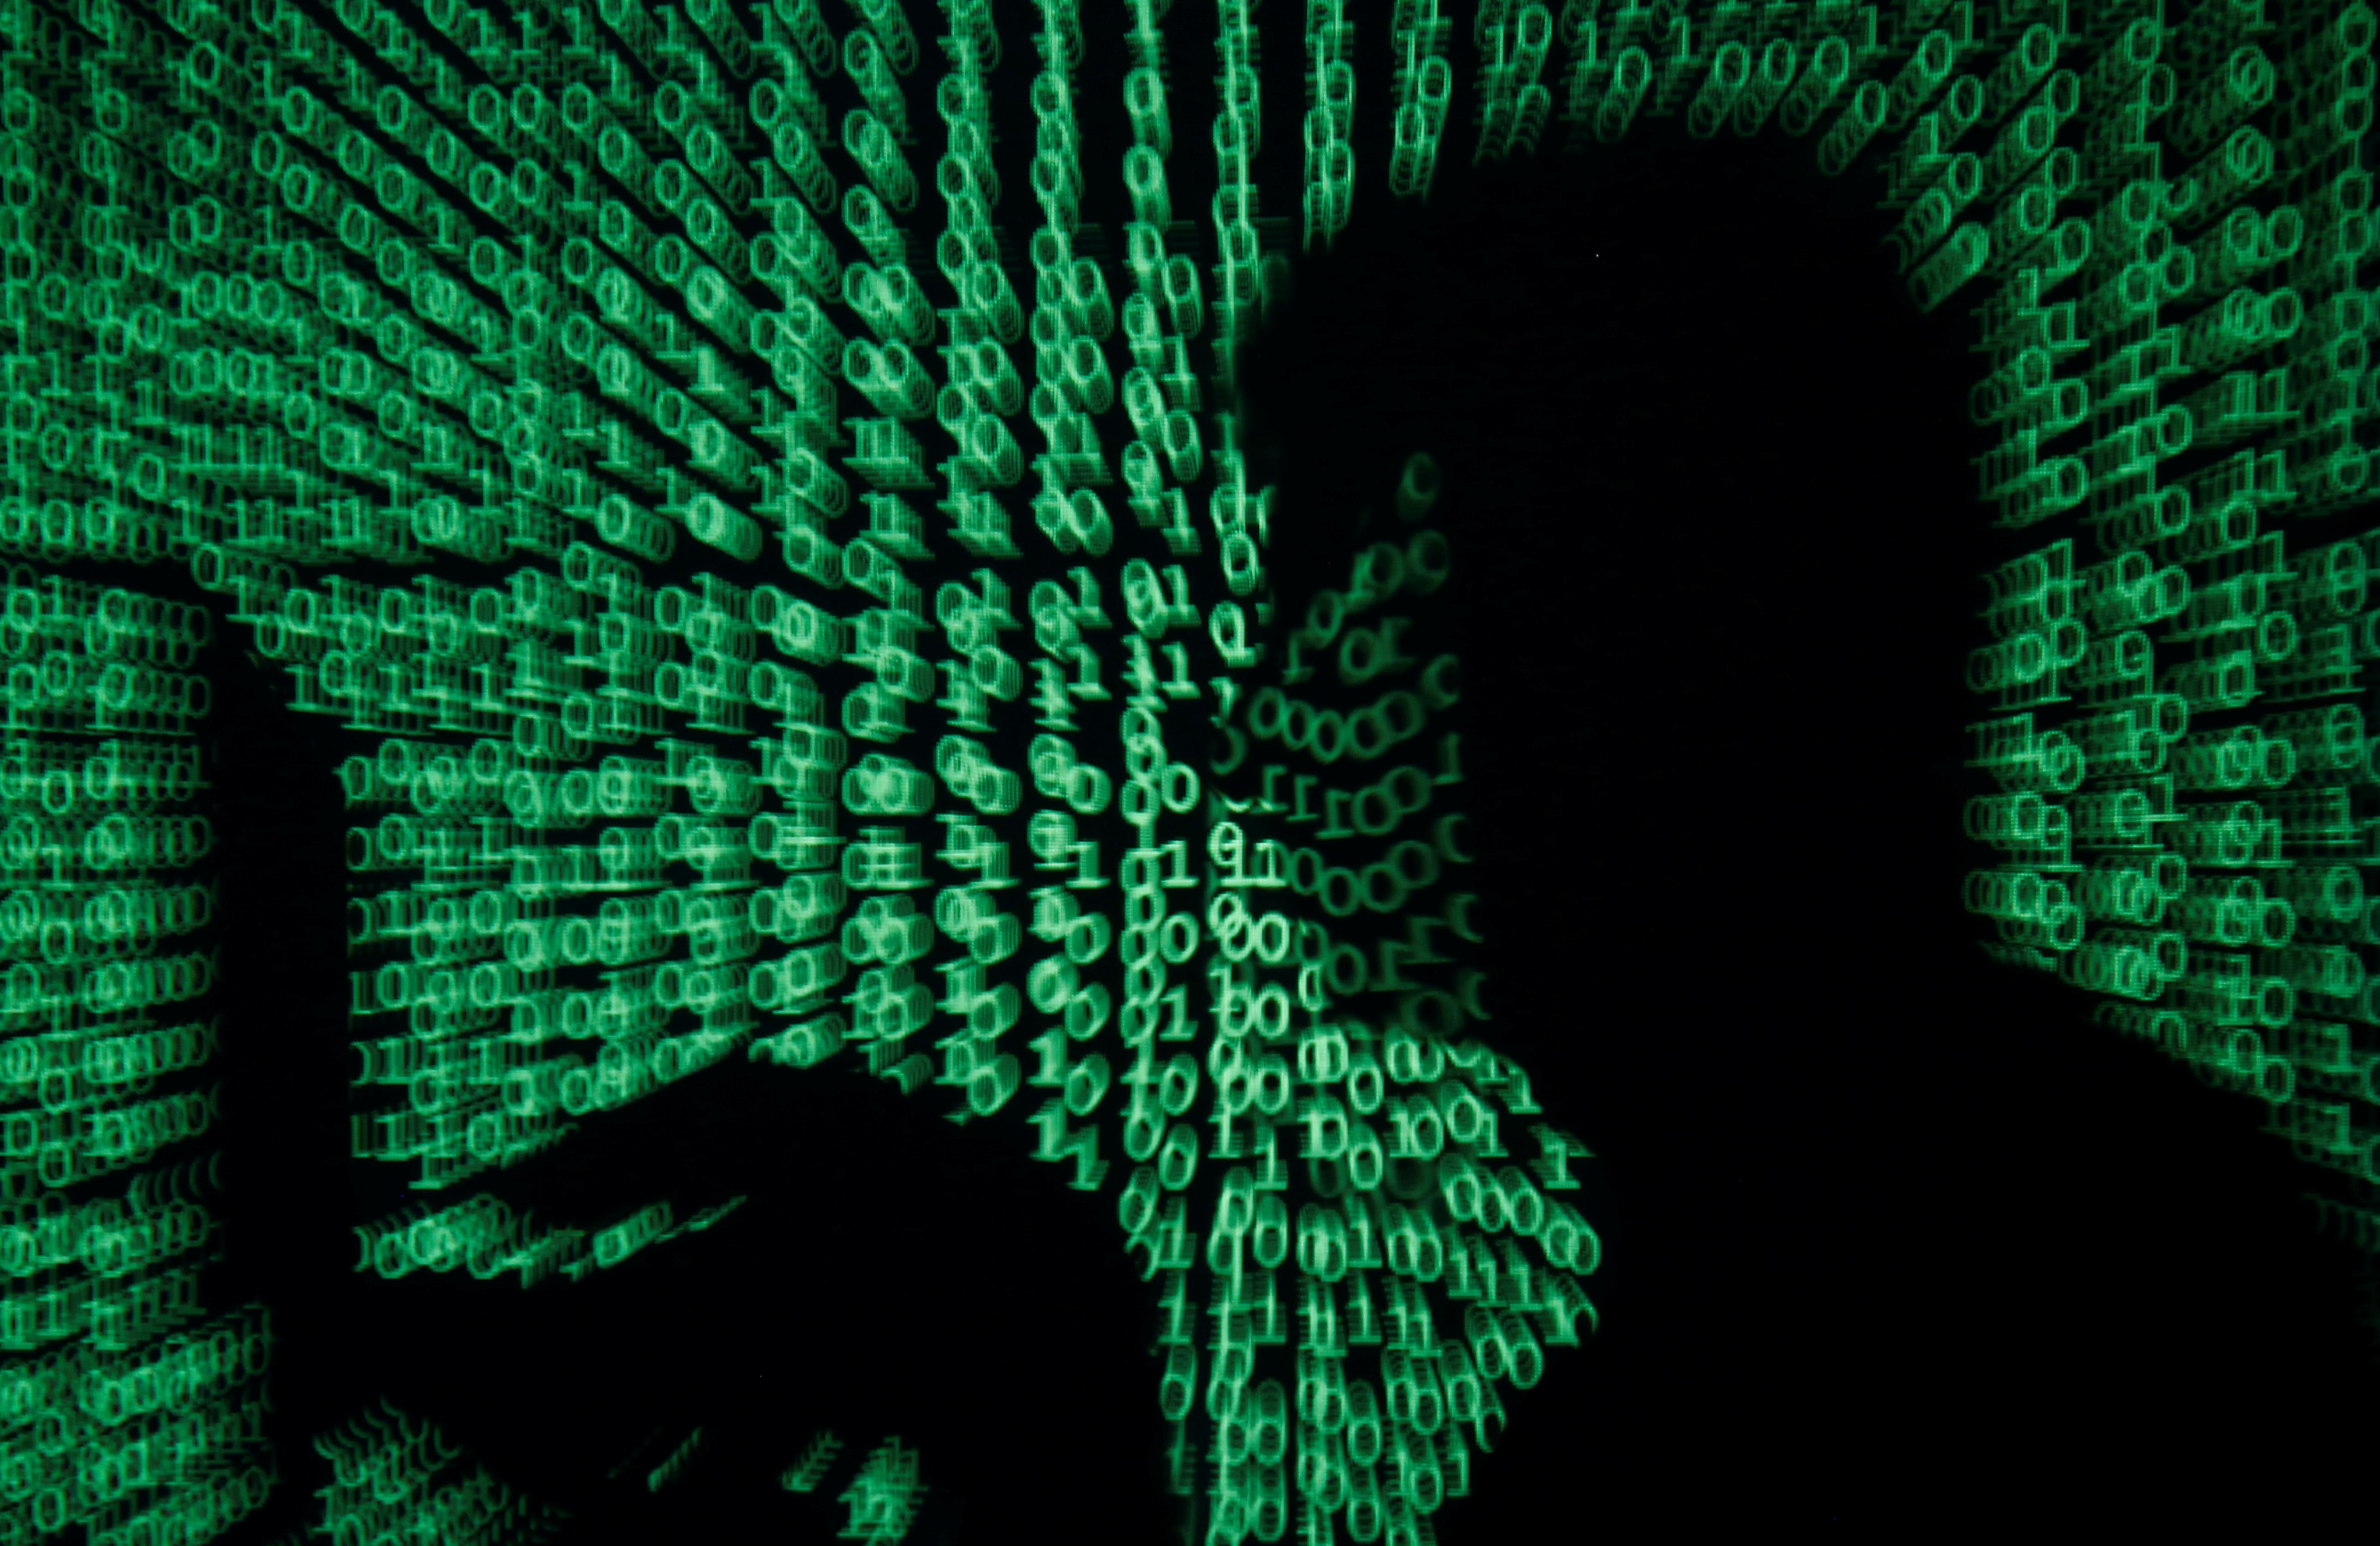 Mexico's economy ministry hit by cyber attack